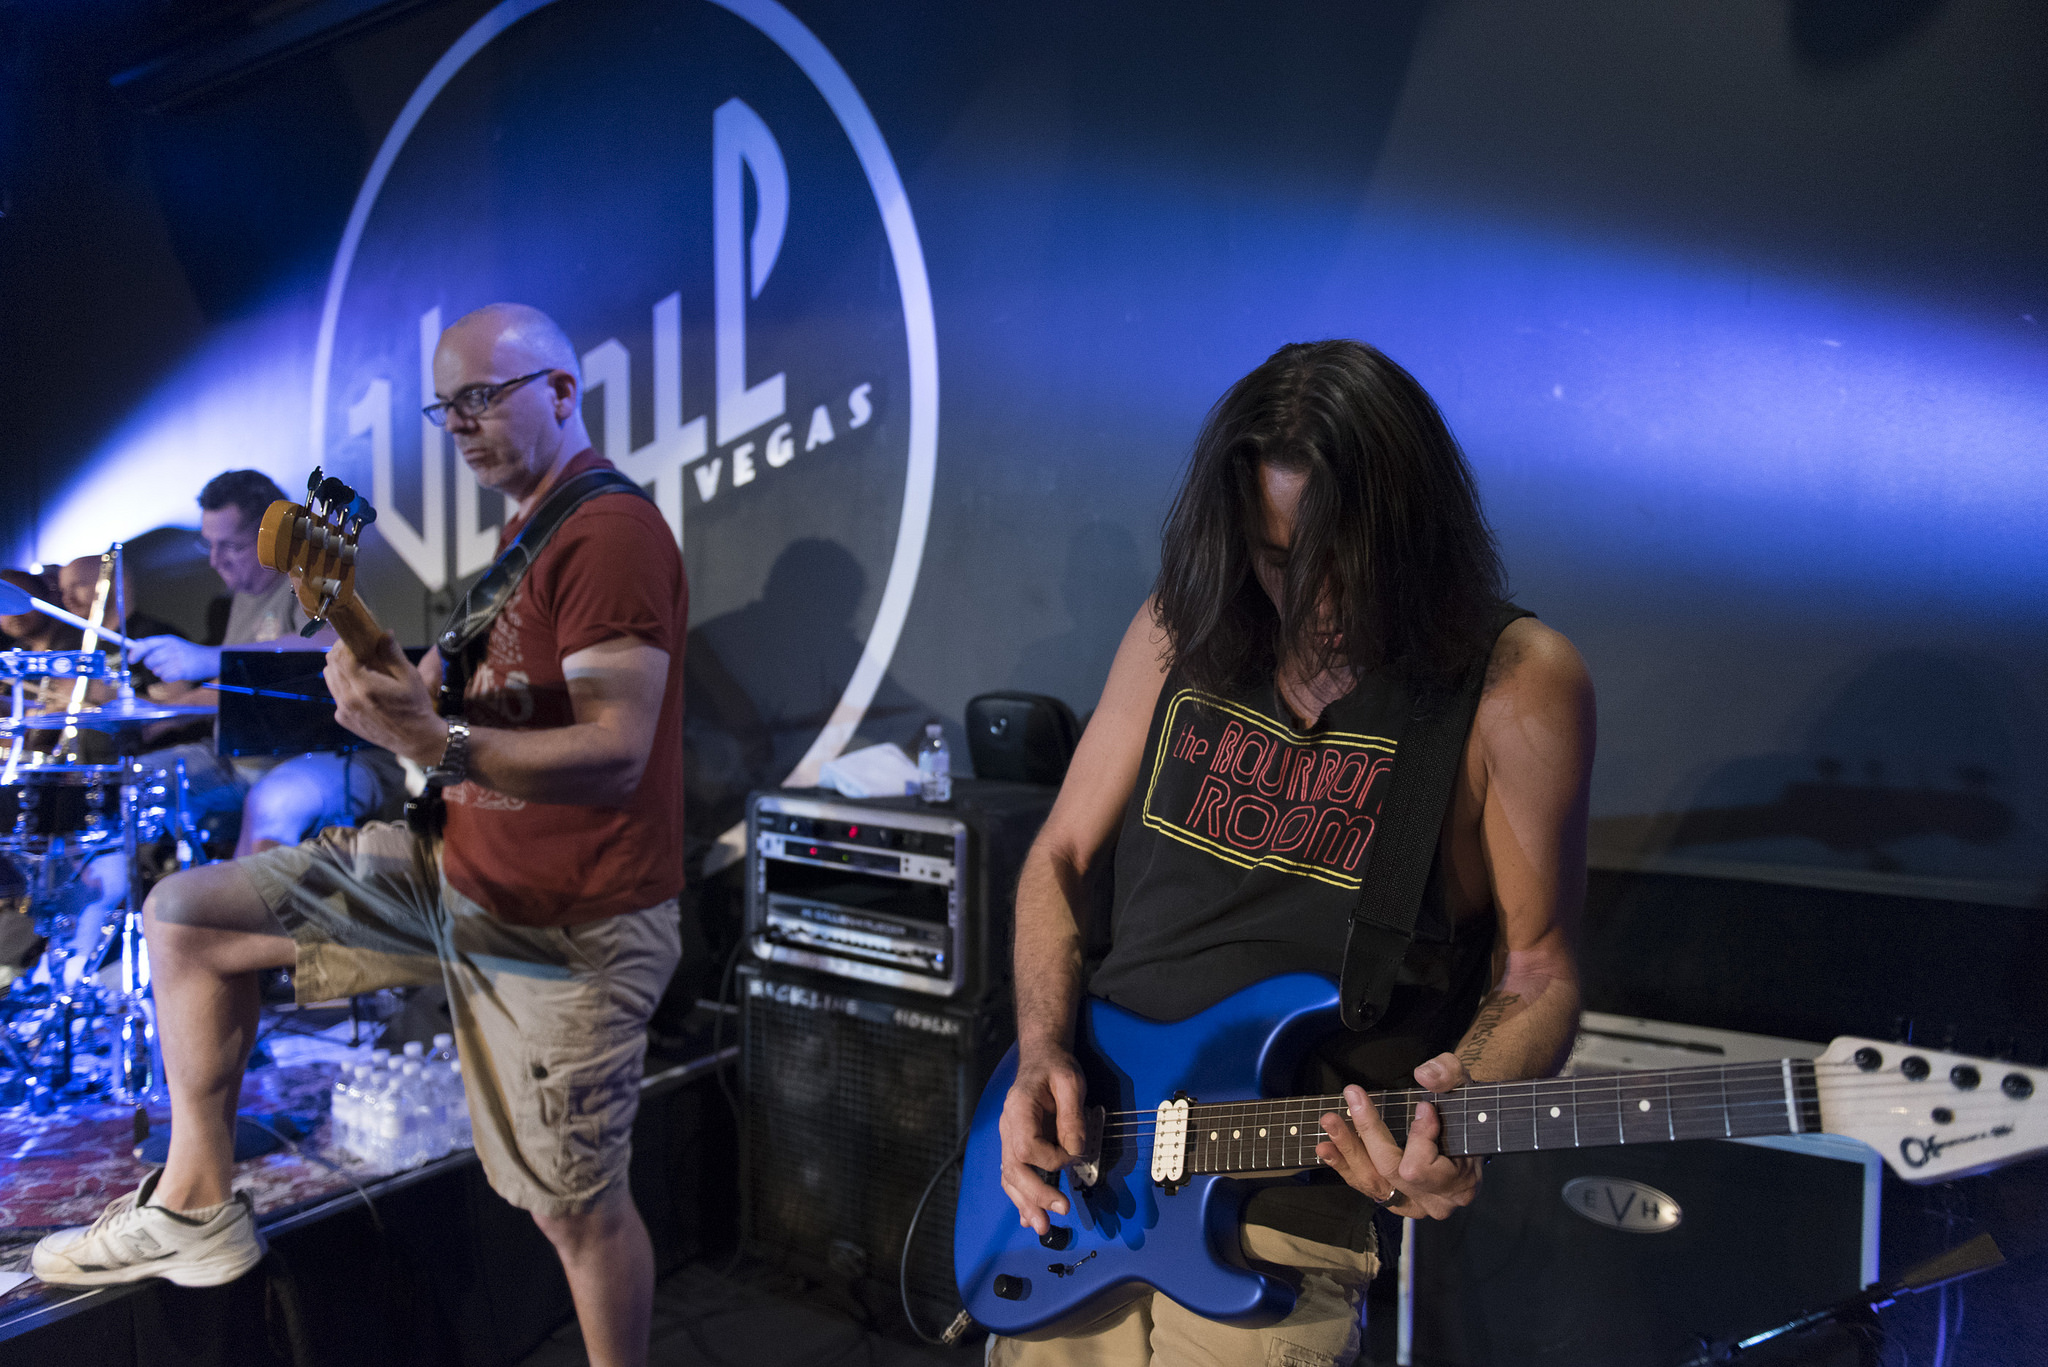 """Chris Cicchino, right, and Bill Pearce rehearse for this month's """"Mondays Dark"""" at Vinyl at the Hard Rock Hotel in Las Vegas Monday, June 20, 2016. This month's show raised money for Habitat for Humanity Las Vegas. Jason Ogulnik/Las Vegas Review-Journal"""